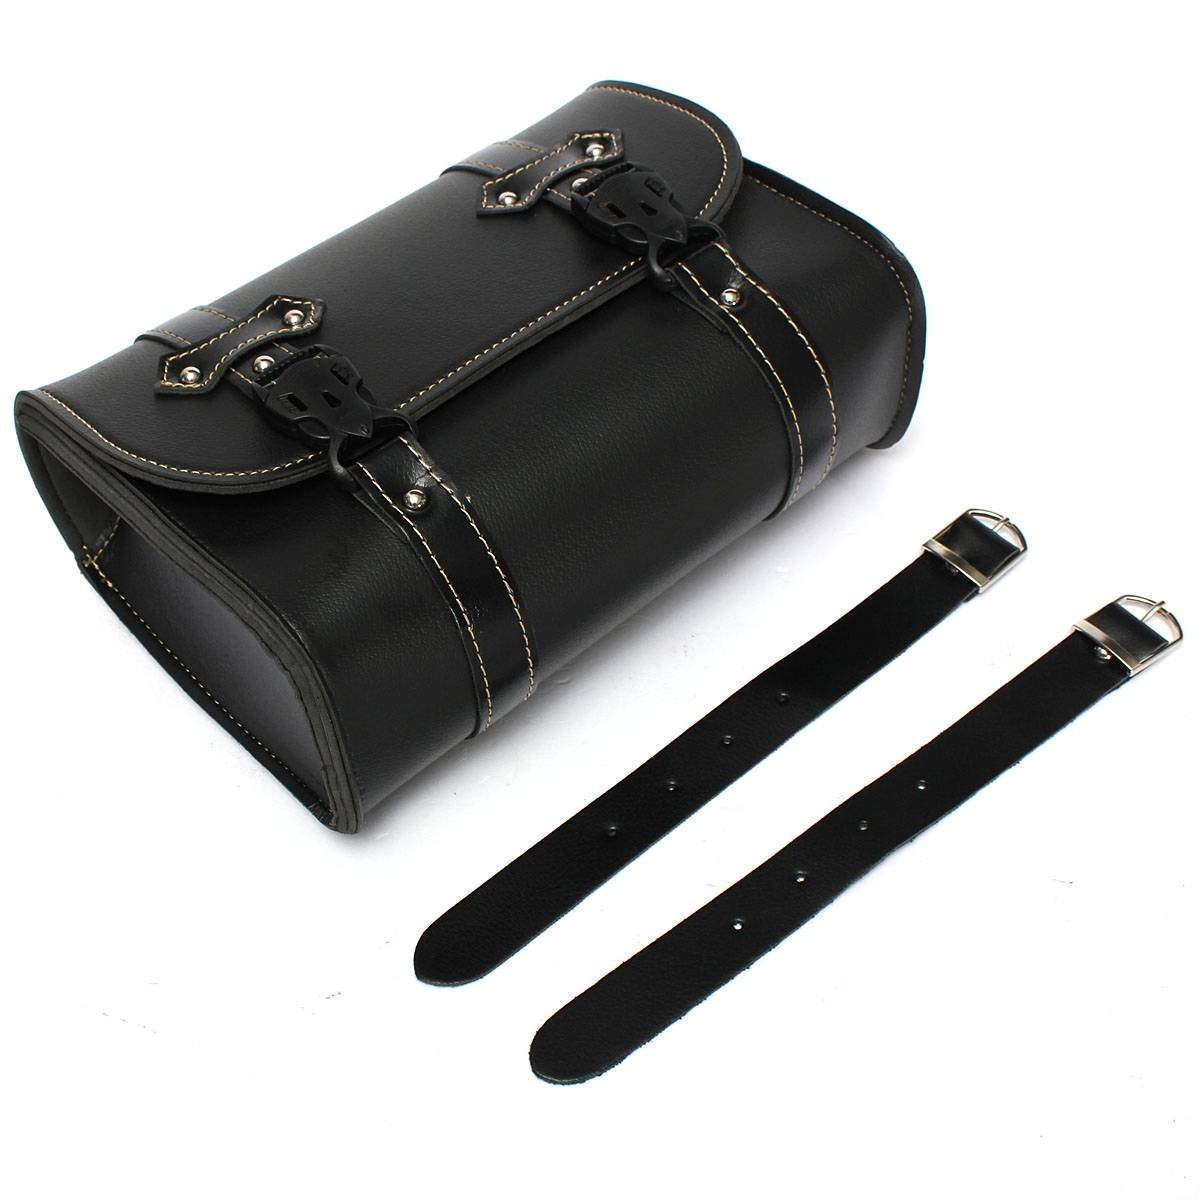 Promotion! Universal Moto Saddle Pouch Bag Storage Tool in Leather For Harley Davidson Black